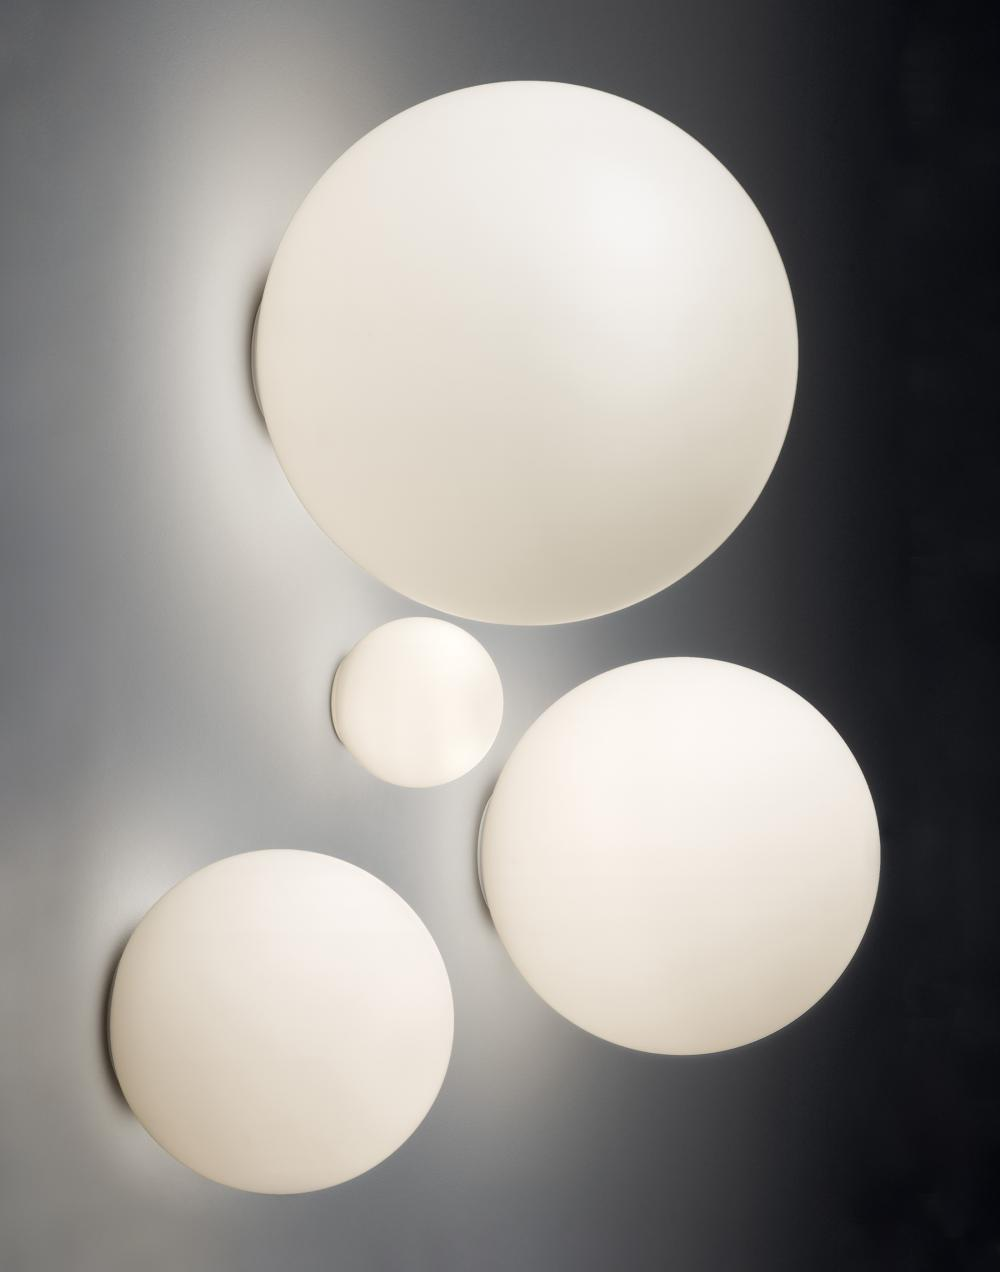 Dioscuri wall / ceiling light